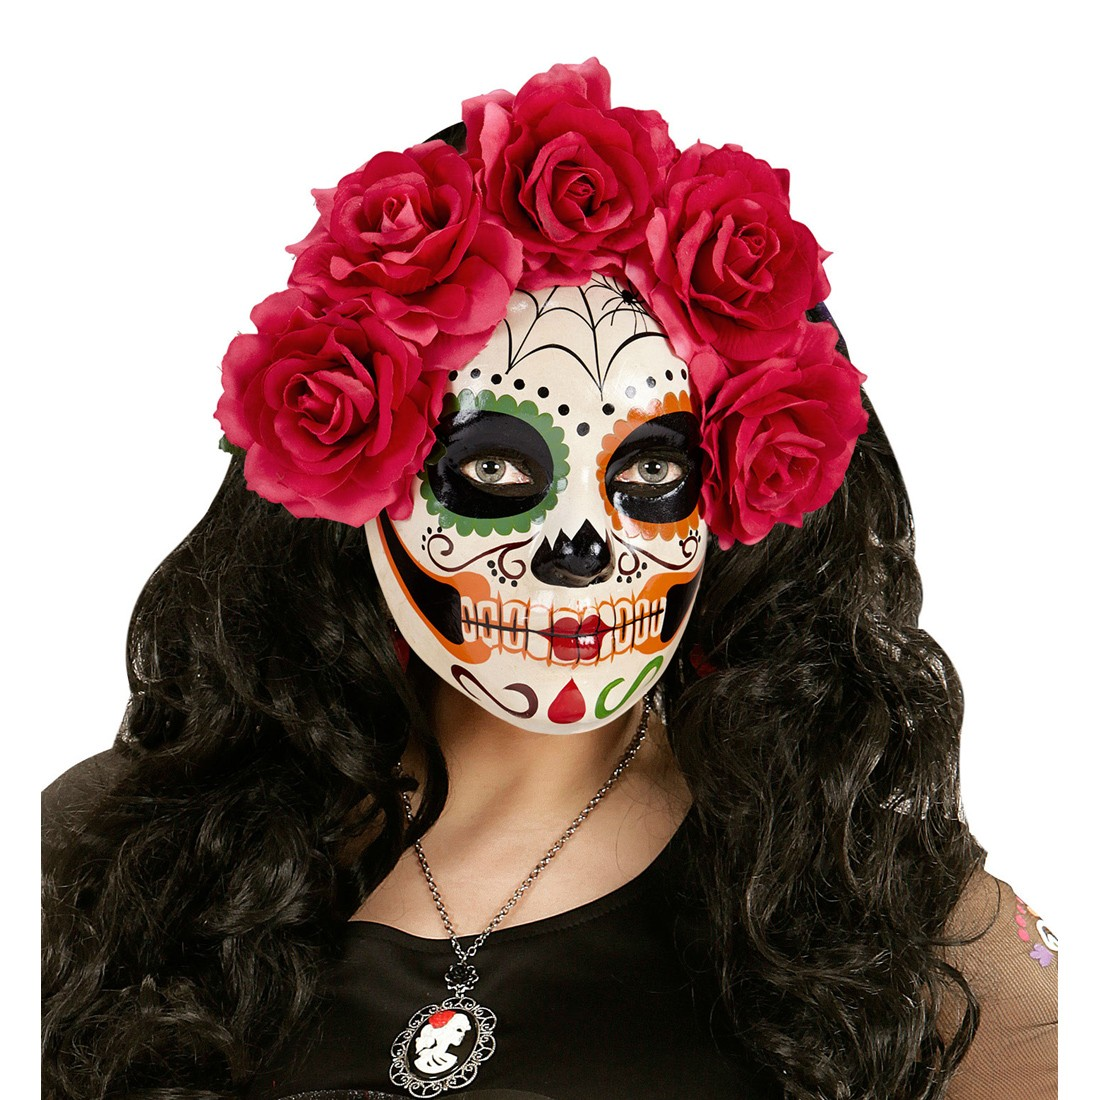 sugar skull maske mit roten rosen la catrina skelett todesmaske 14 99. Black Bedroom Furniture Sets. Home Design Ideas